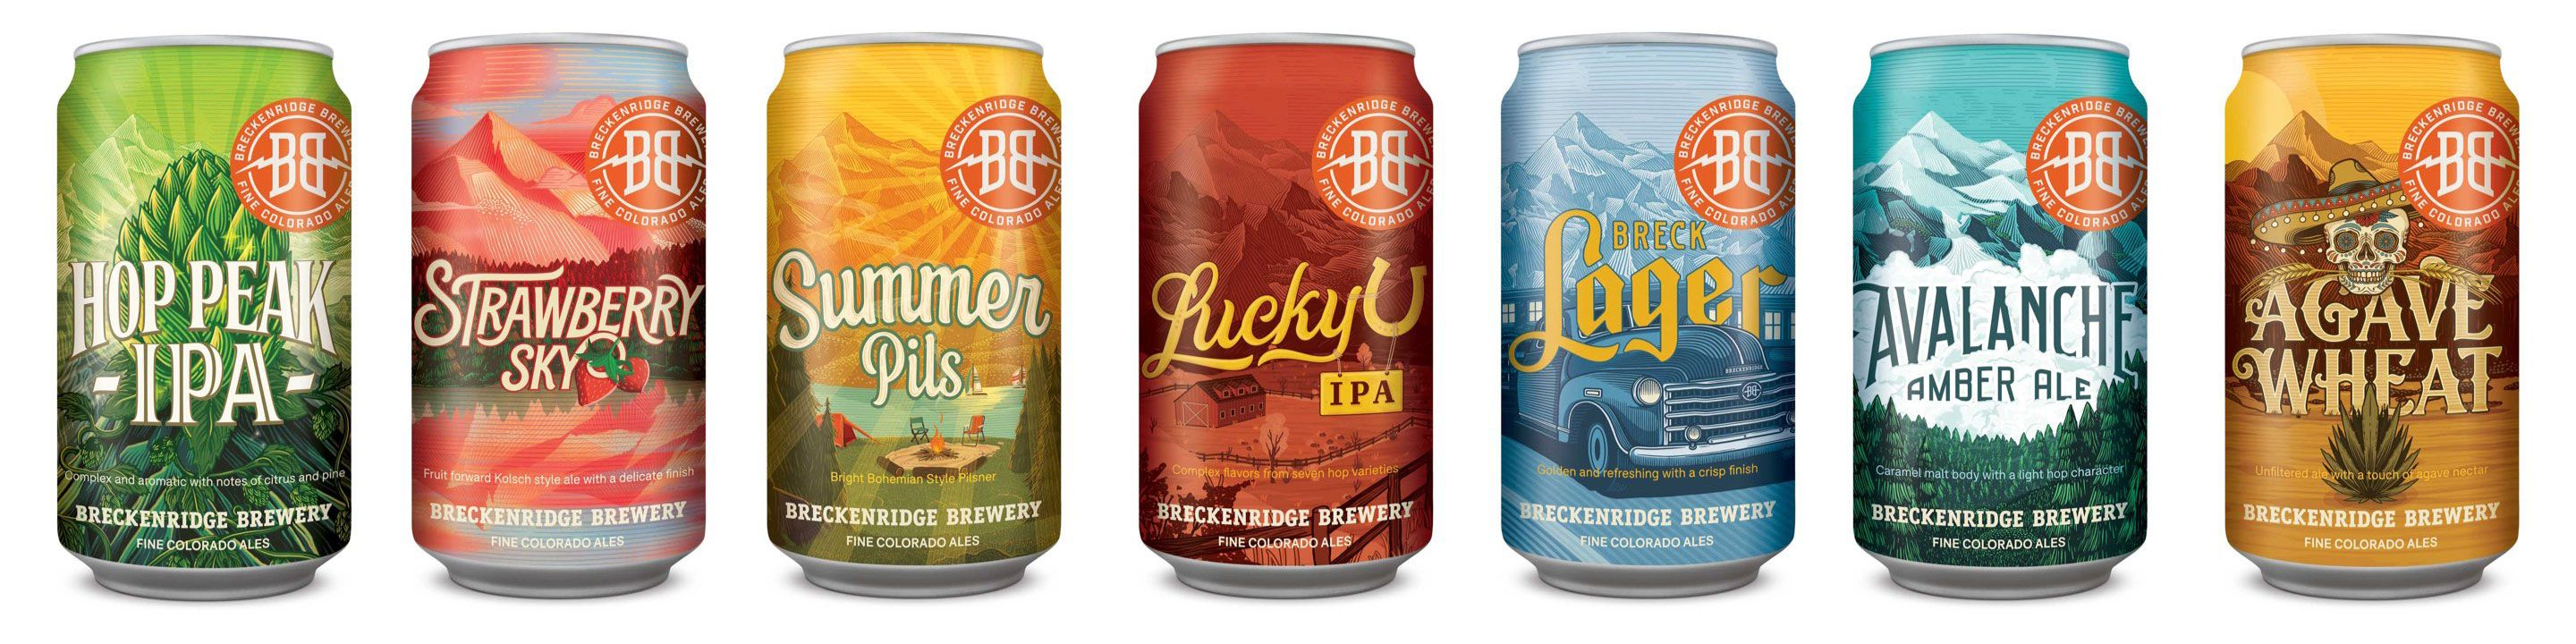 Design spread of Breckenridge Brewery's cans.